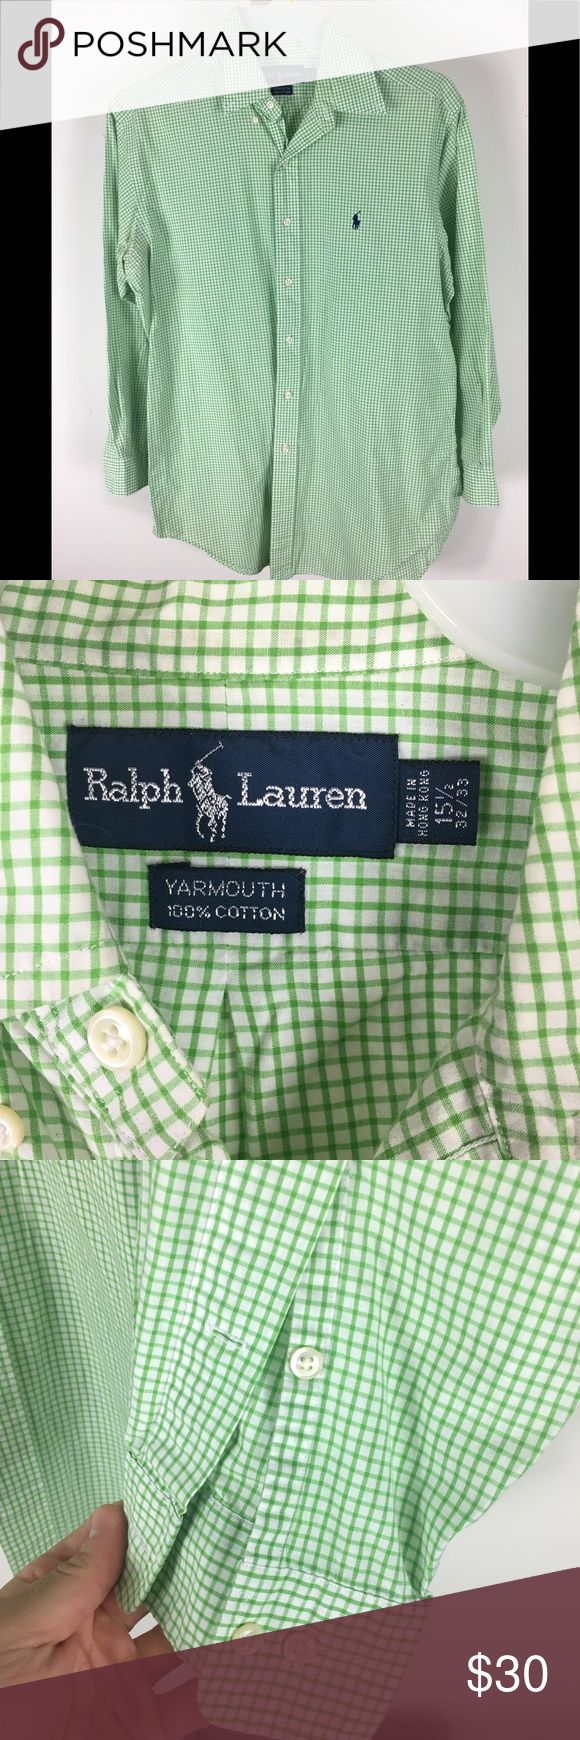 Ralph Lauren Dress Shirt MEDIUM With it's modern fit and lightweight cotton, this dress shirt is a smart choice for any formal occasion. Size 15-1/2 has a 32/33 length. Button down point collar. Long sleeves with buttoned cuffs. Signature embroidered pony at the left chest. 100% cotton. Polo by Ralph Lauren Shirts Dress Shirts